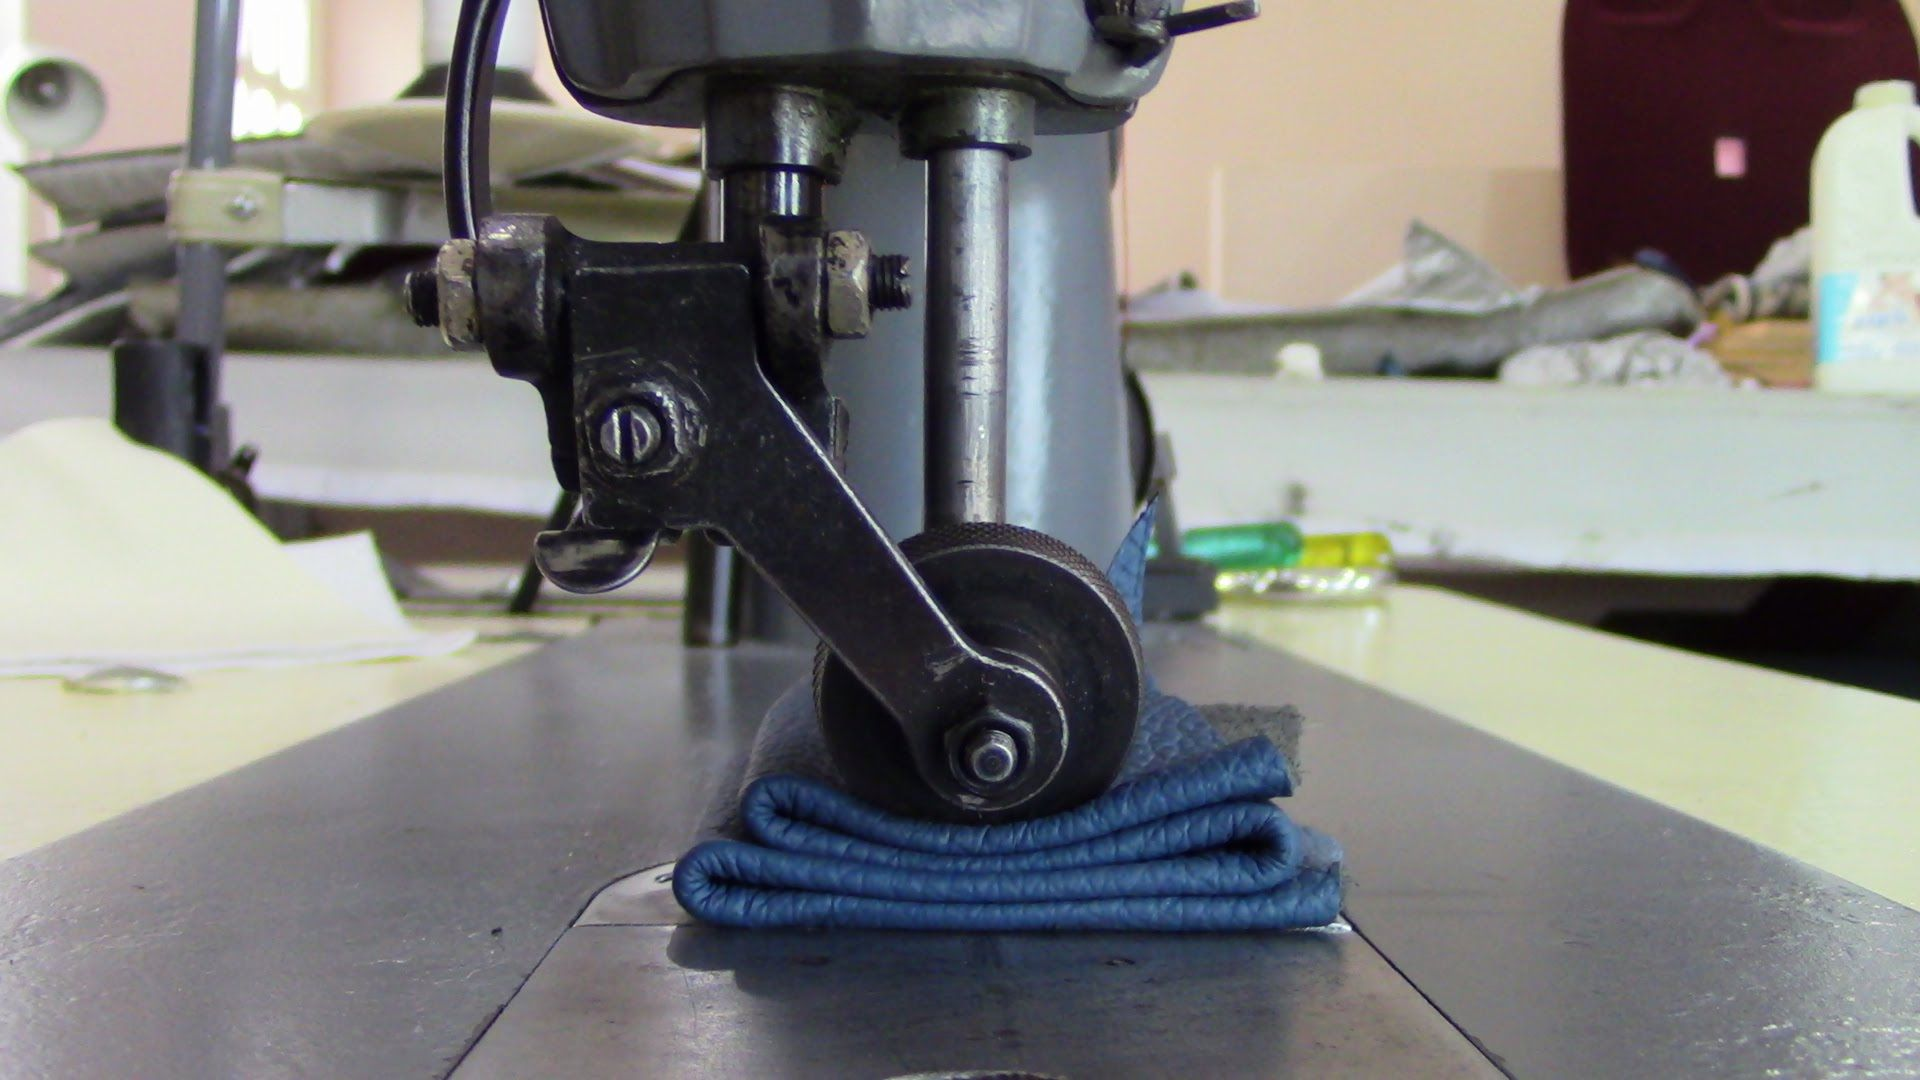 Auto Upholstery Sewing Machine Pleasing Auto Upholstery Sewing